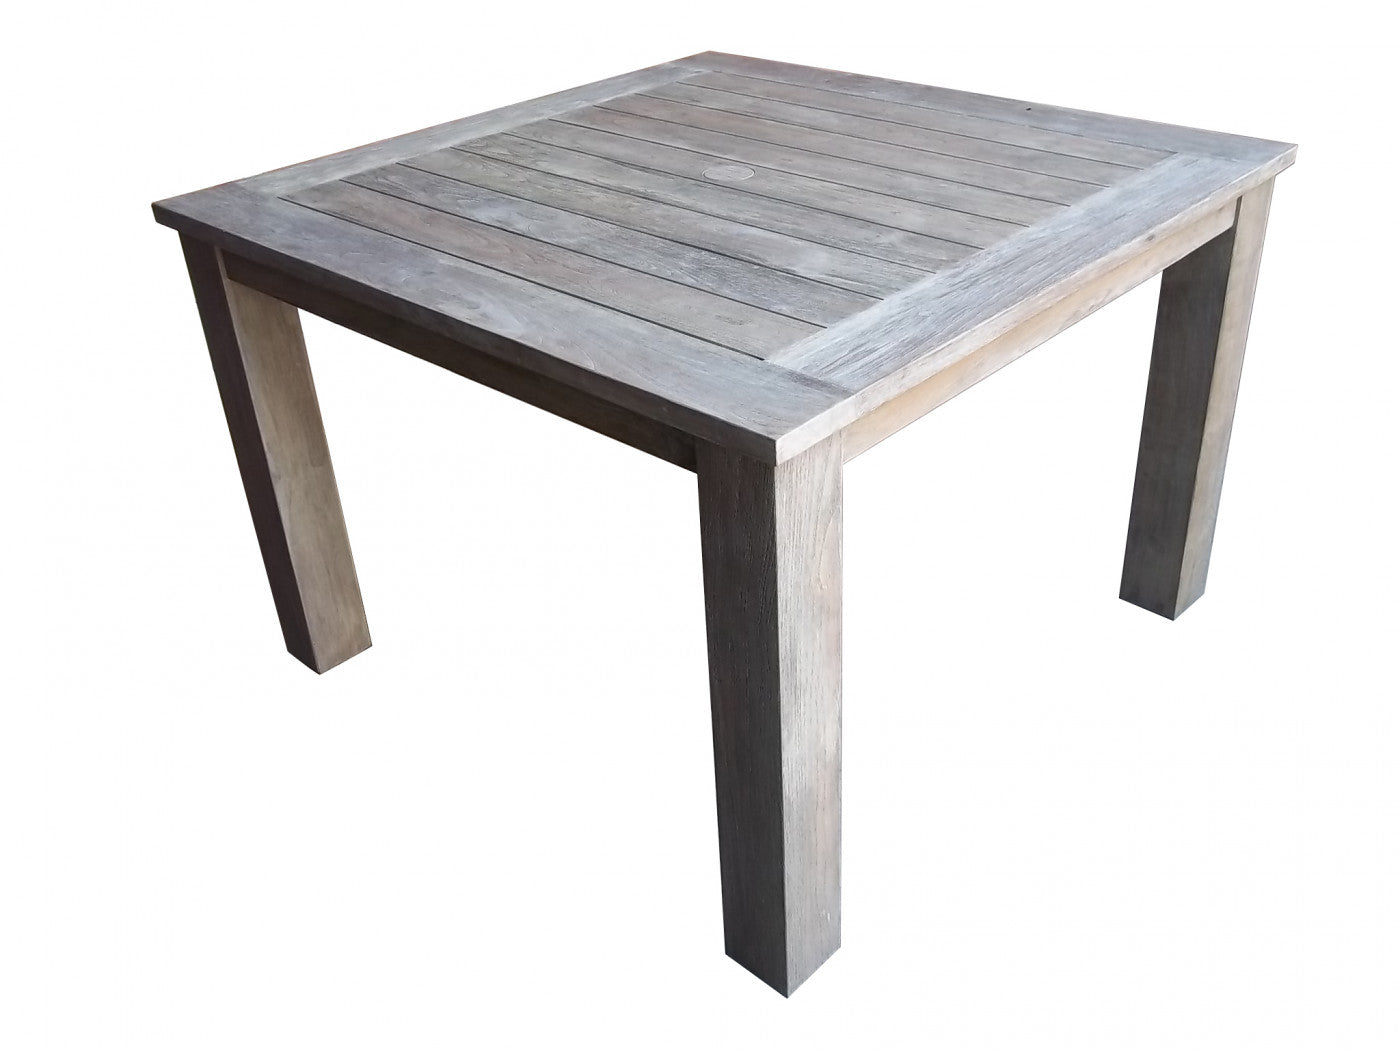 Shelburne Square Dining Table 44""